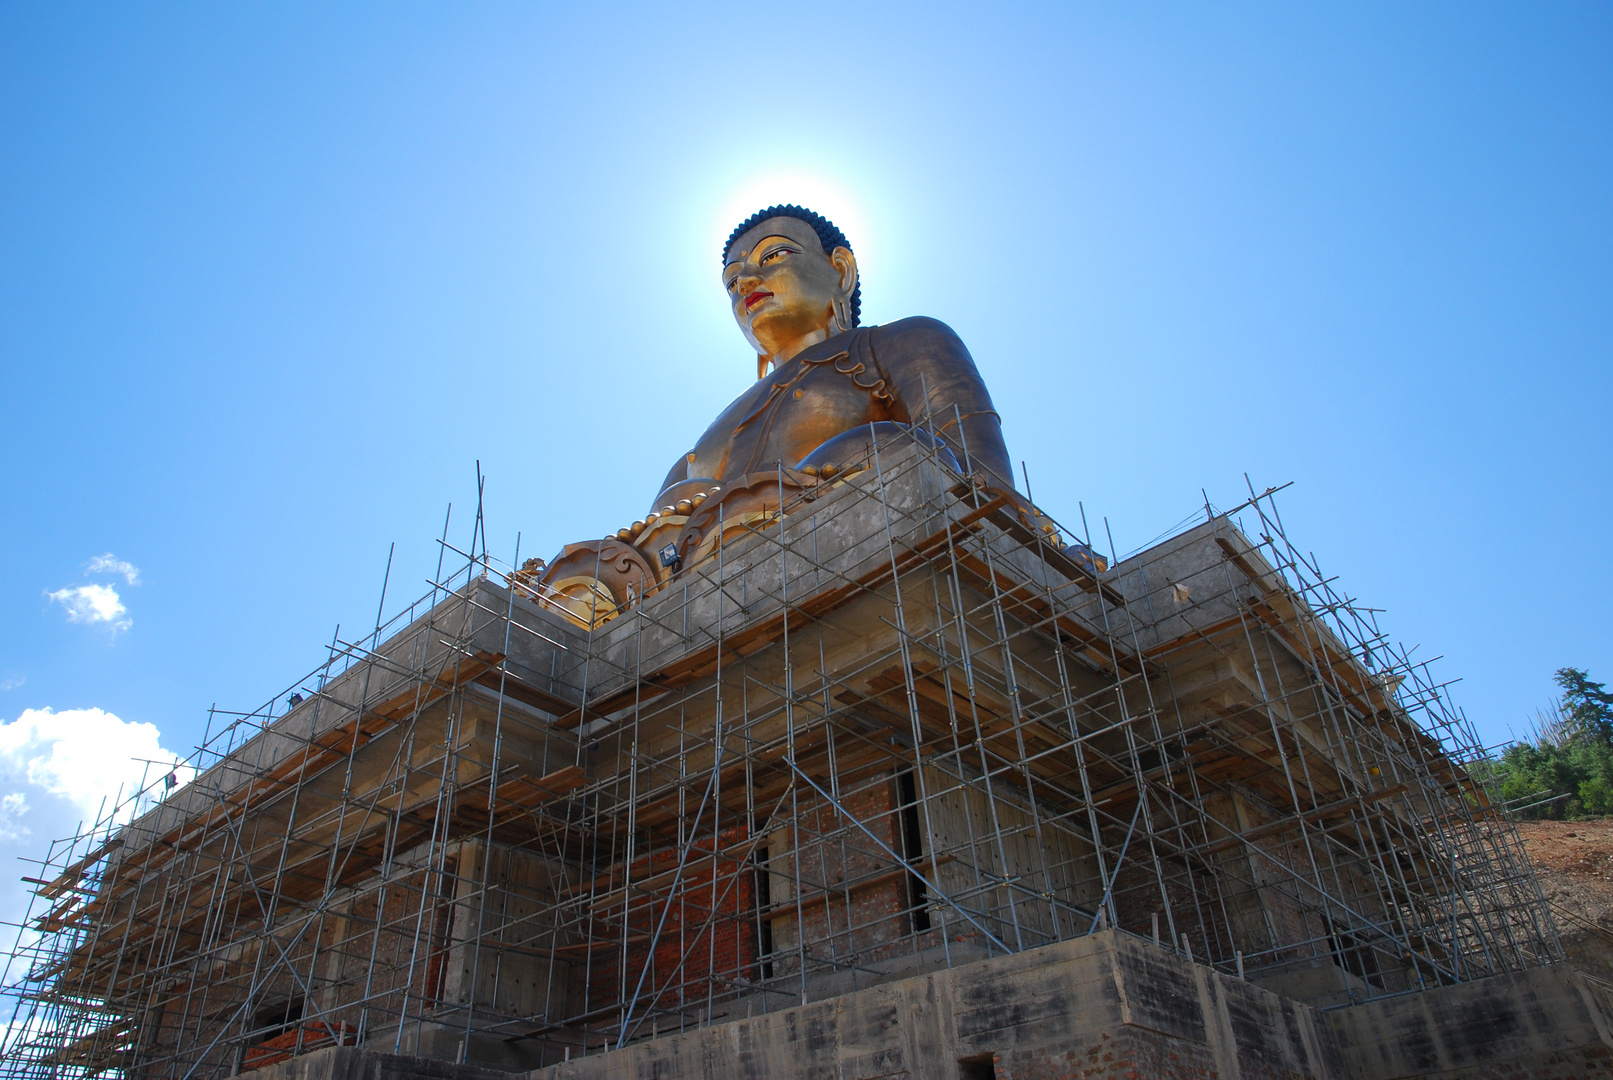 ...building a new Buddha